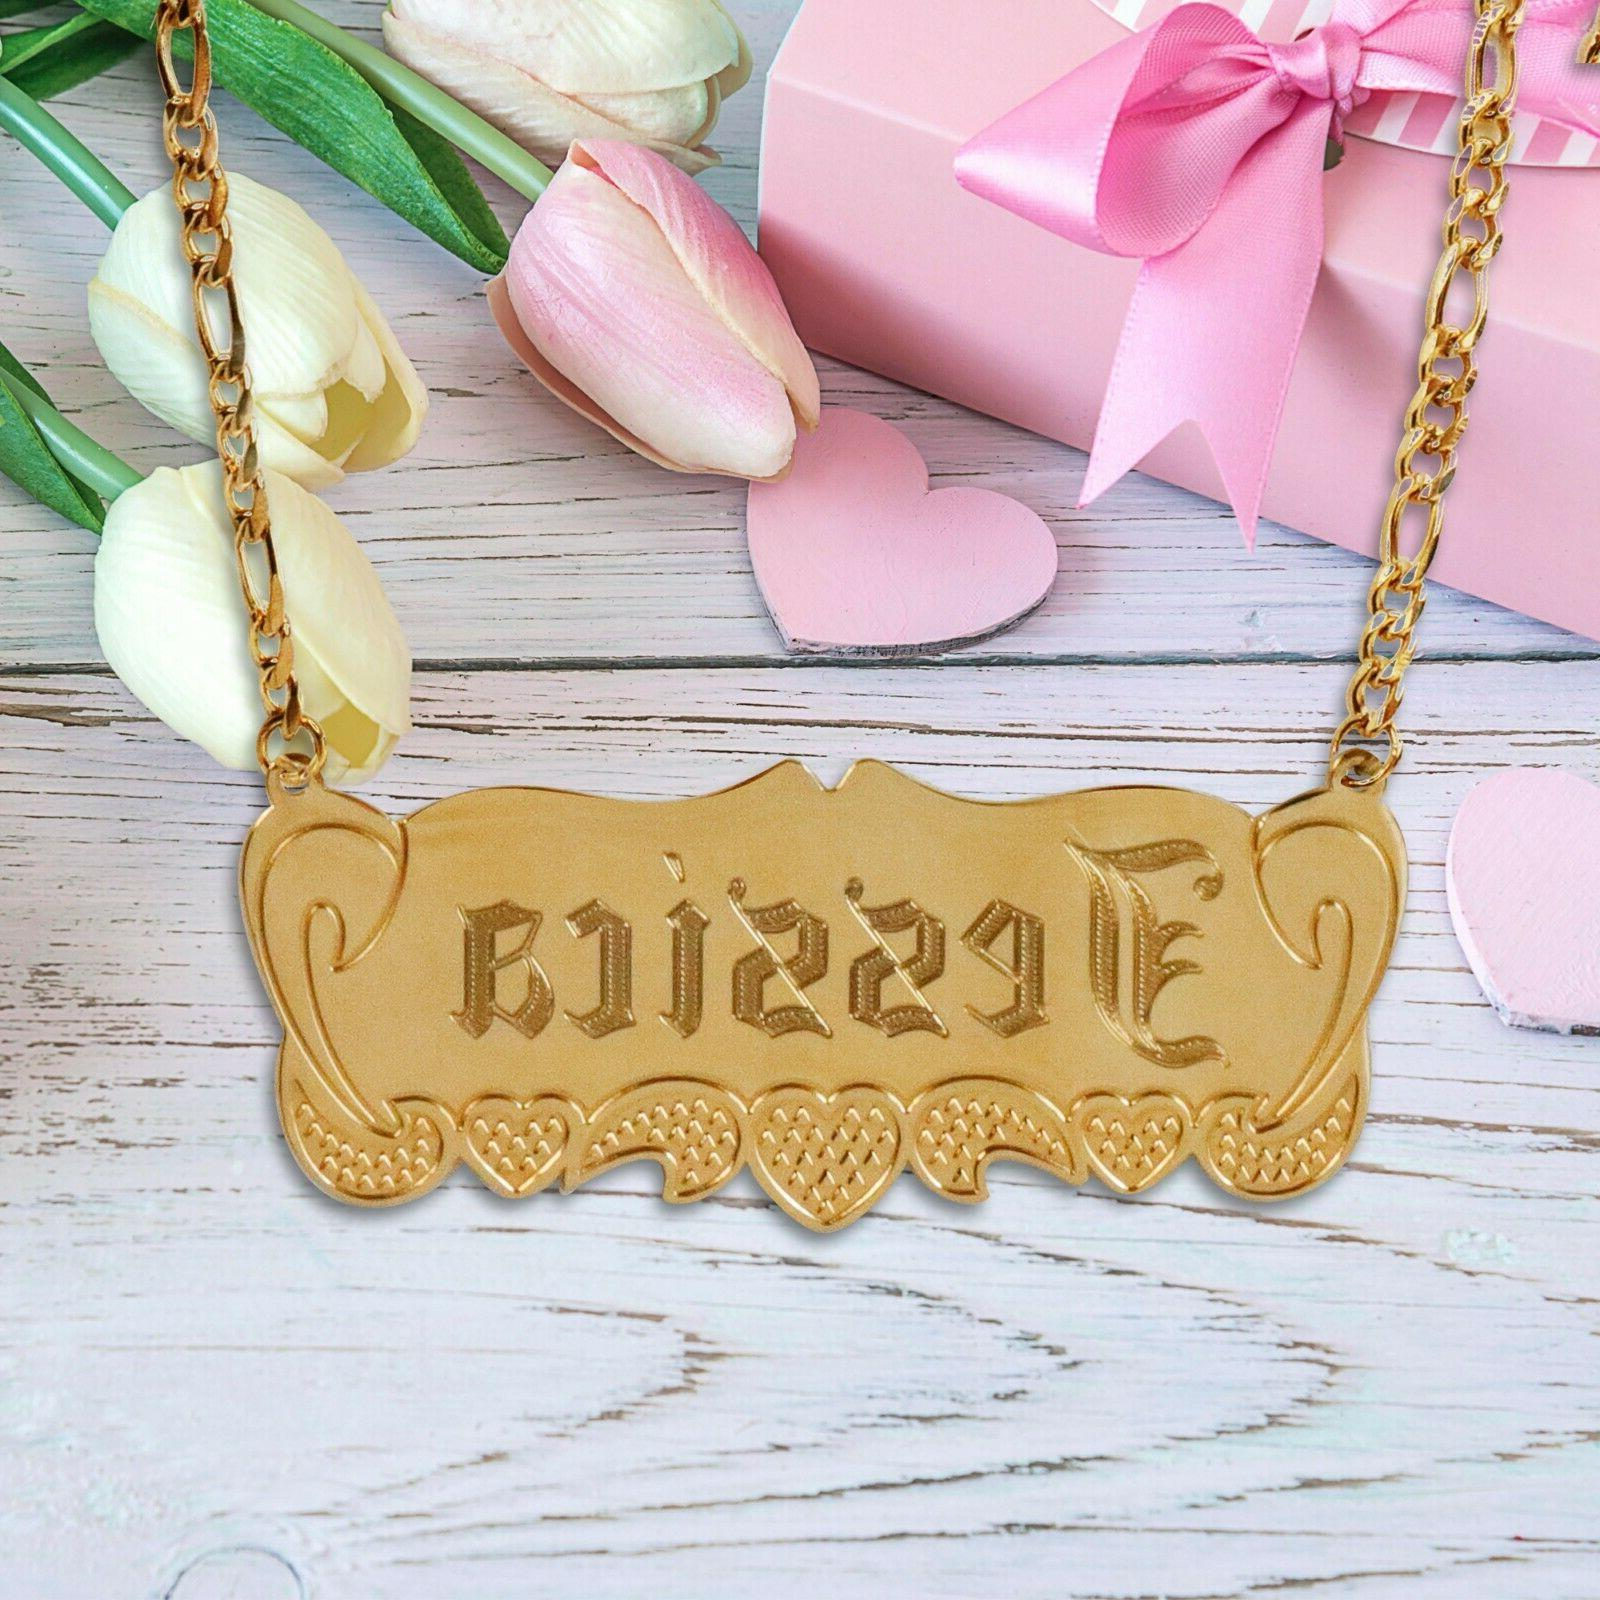 TINA&CO 14K GOLD PLATED NAME 14 STYLES NAME